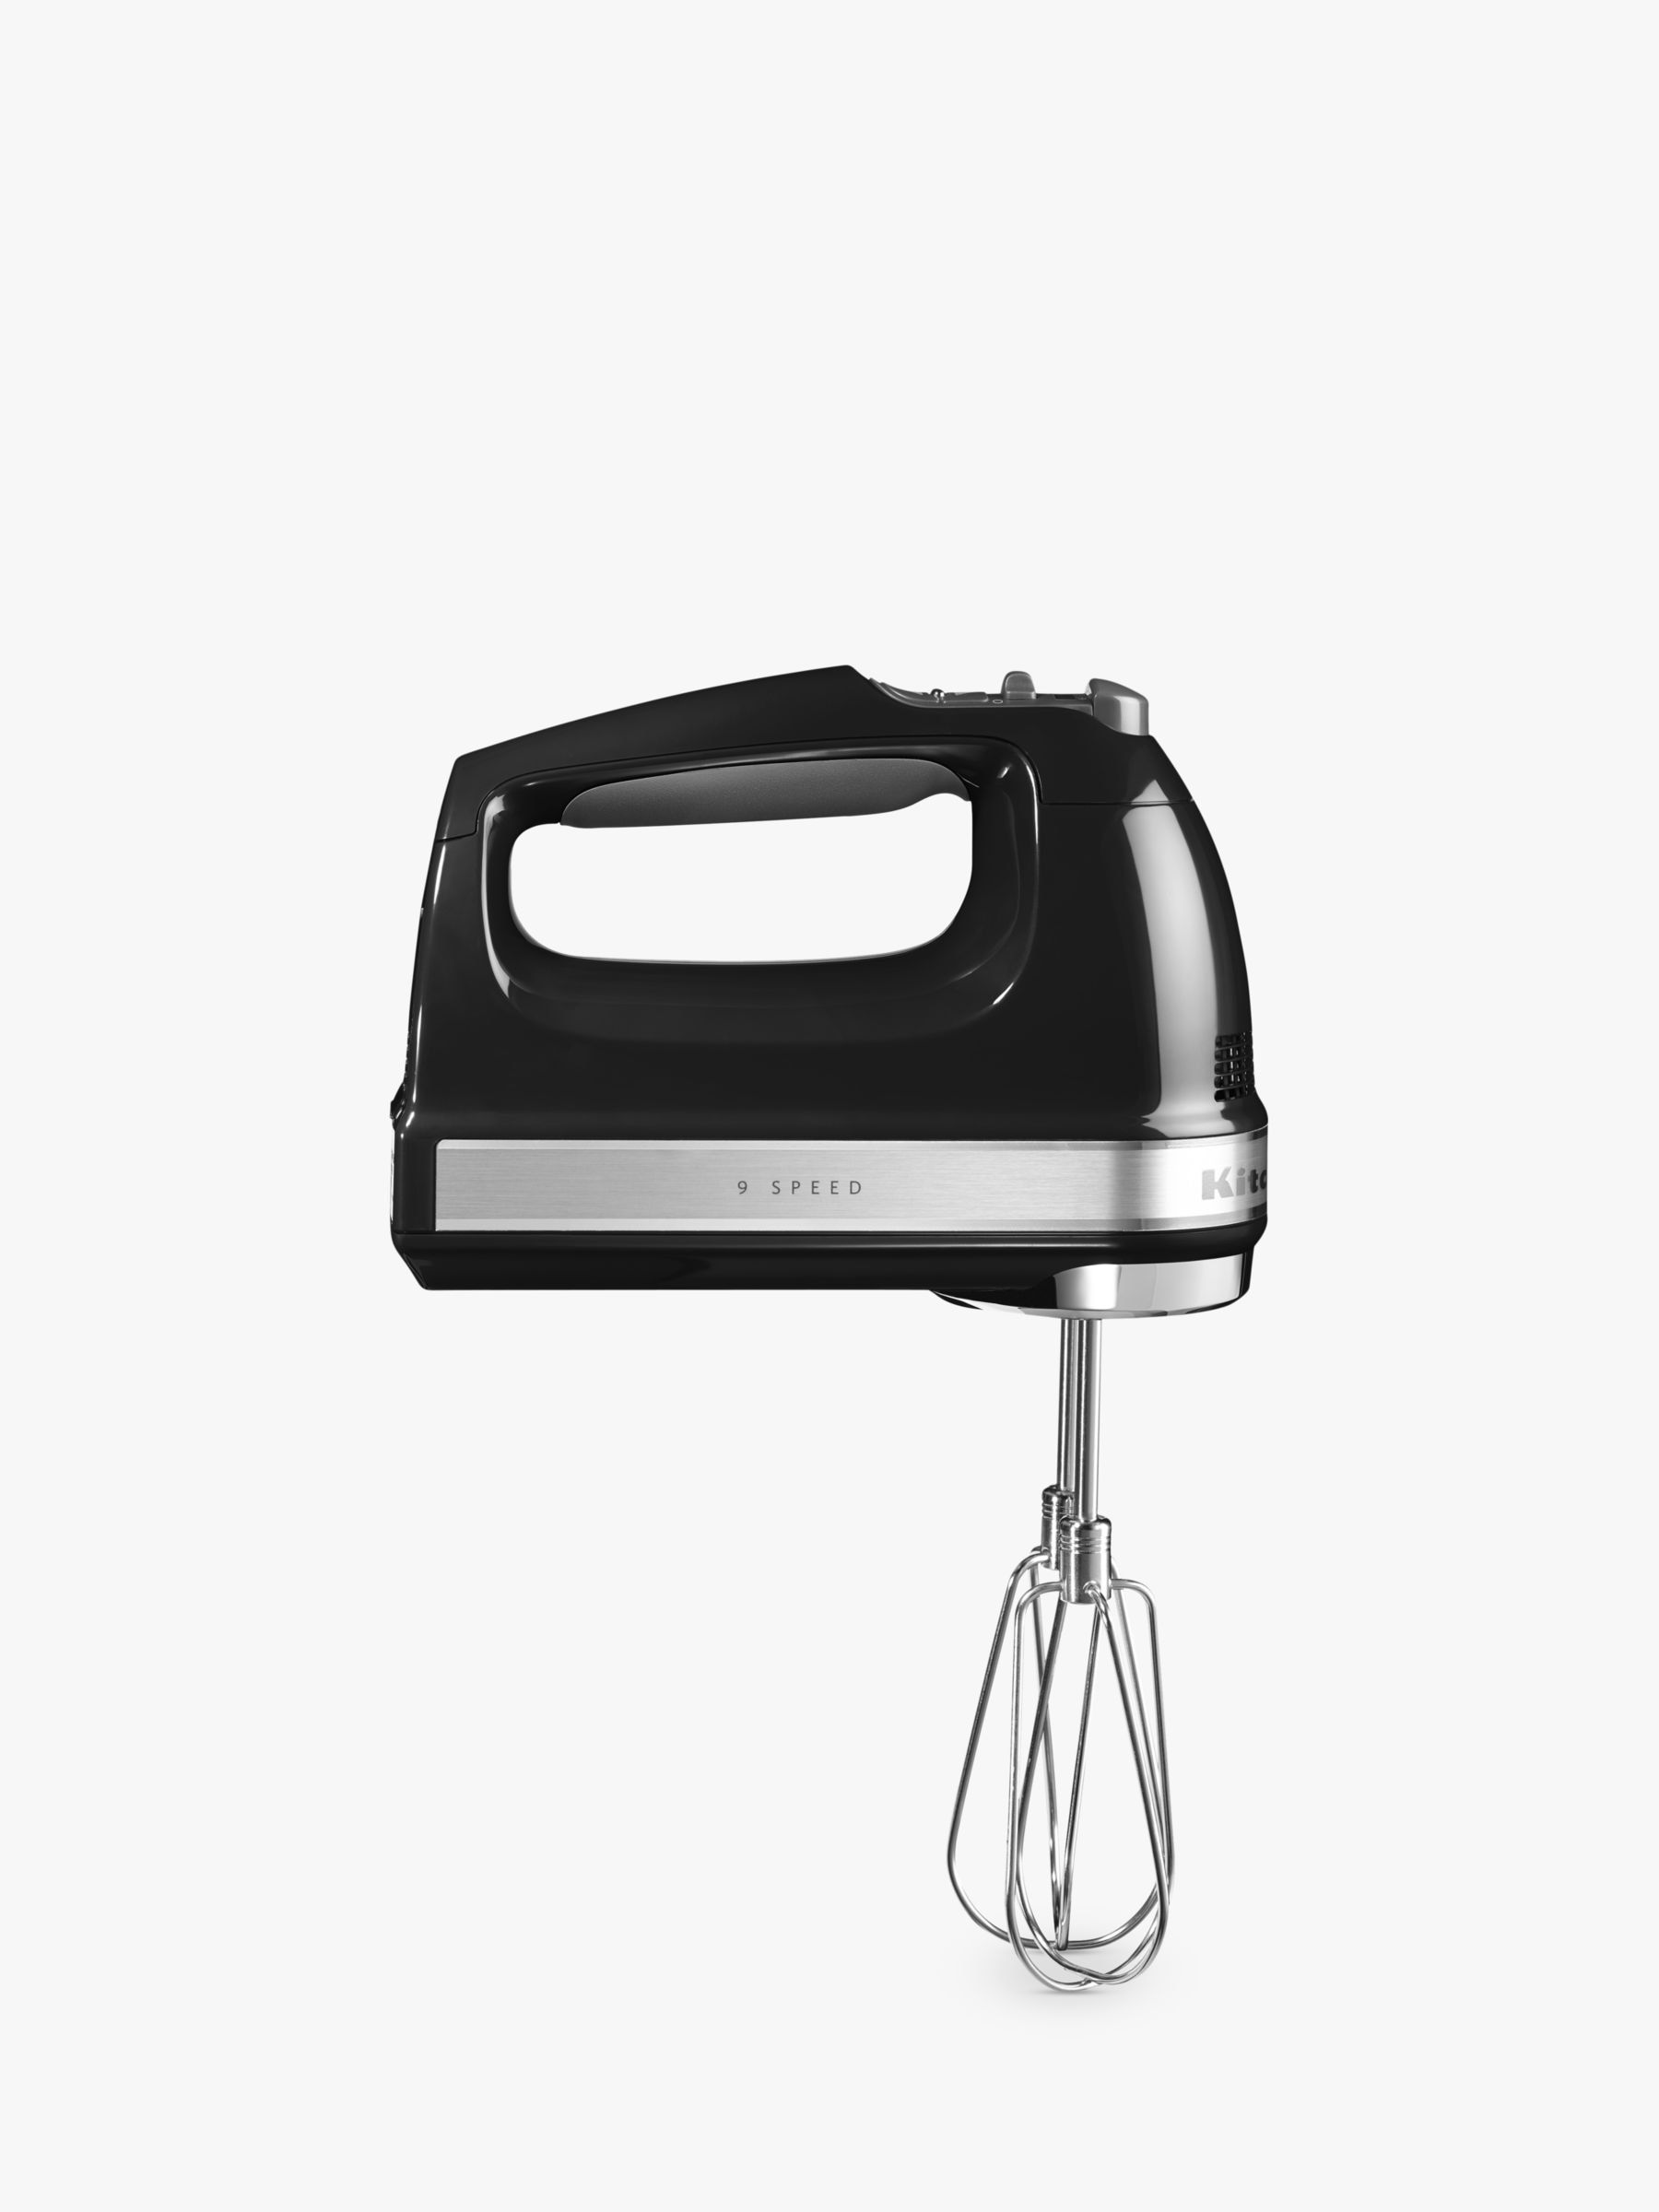 9 Speed Hand Mixer